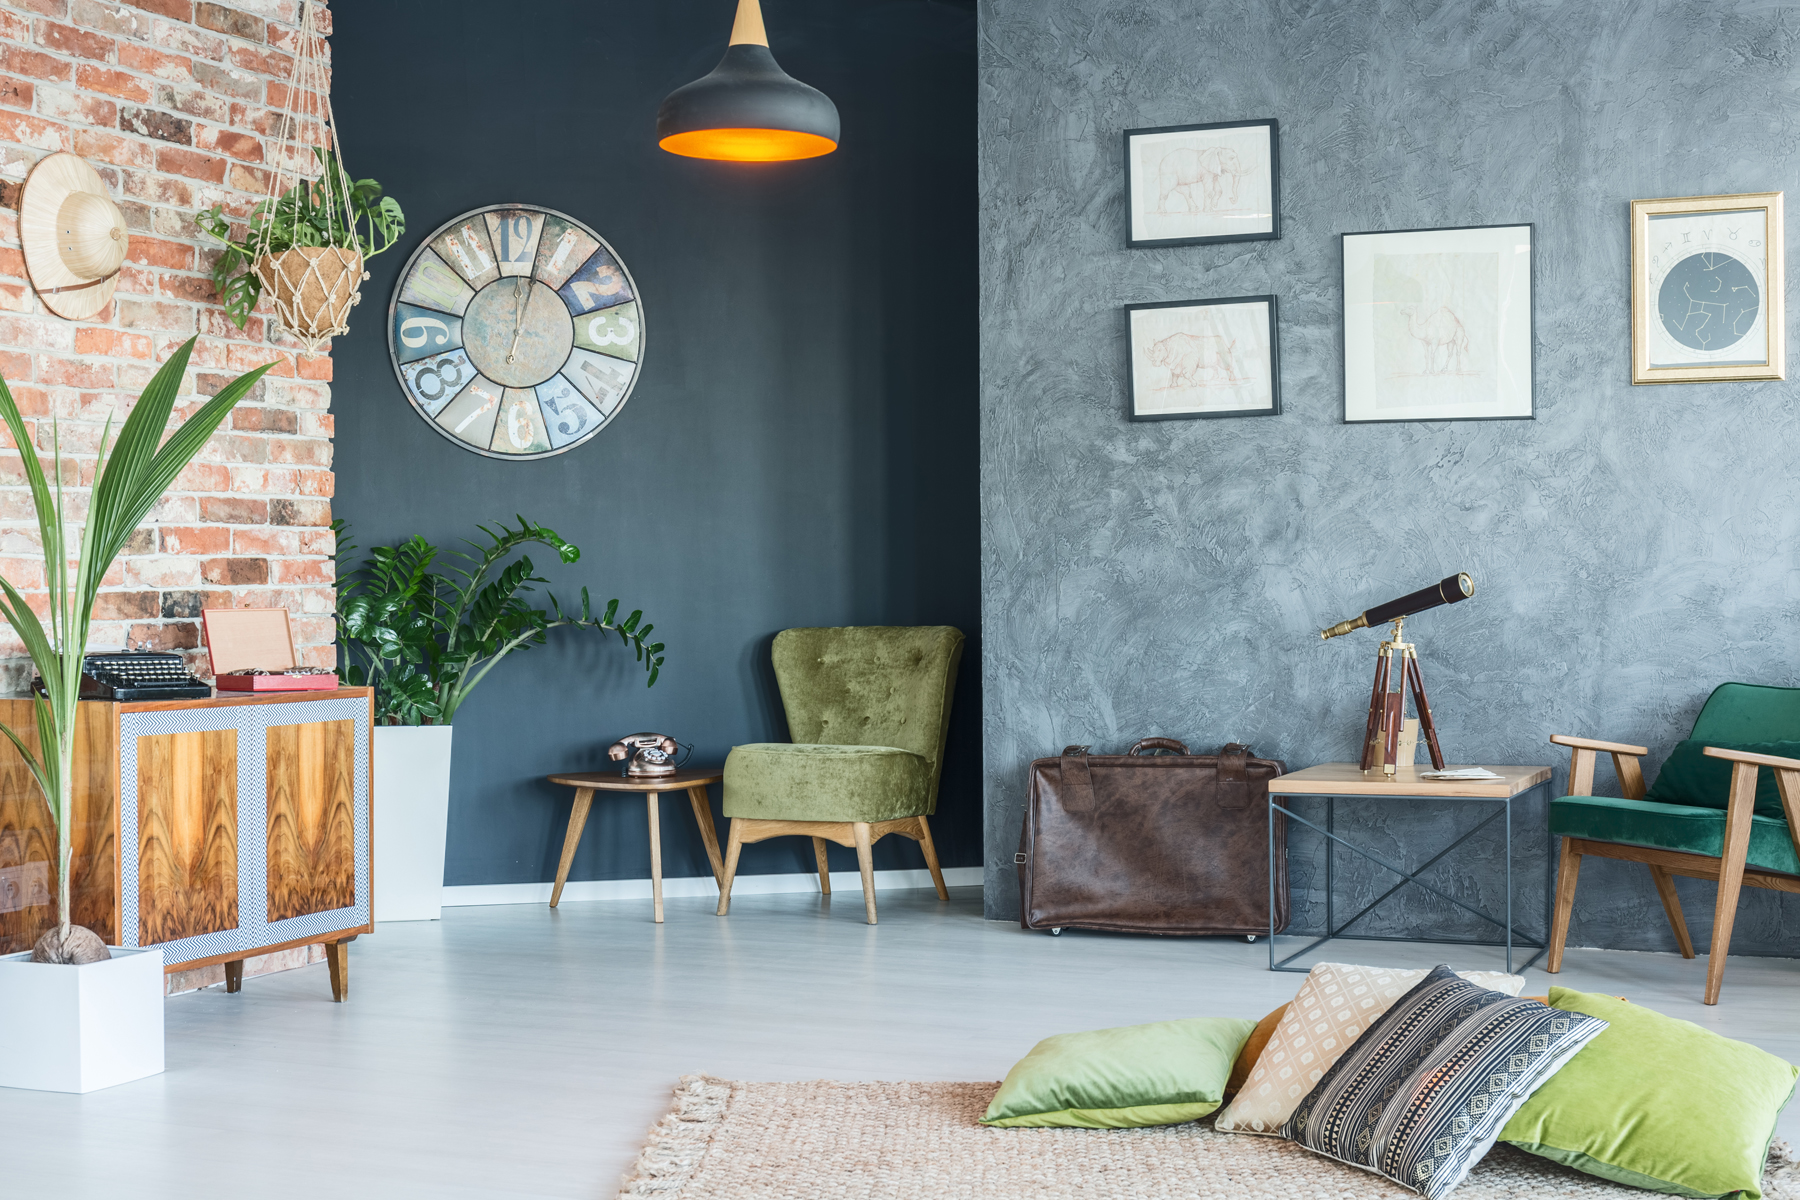 Stylish living room interior design with green accessories